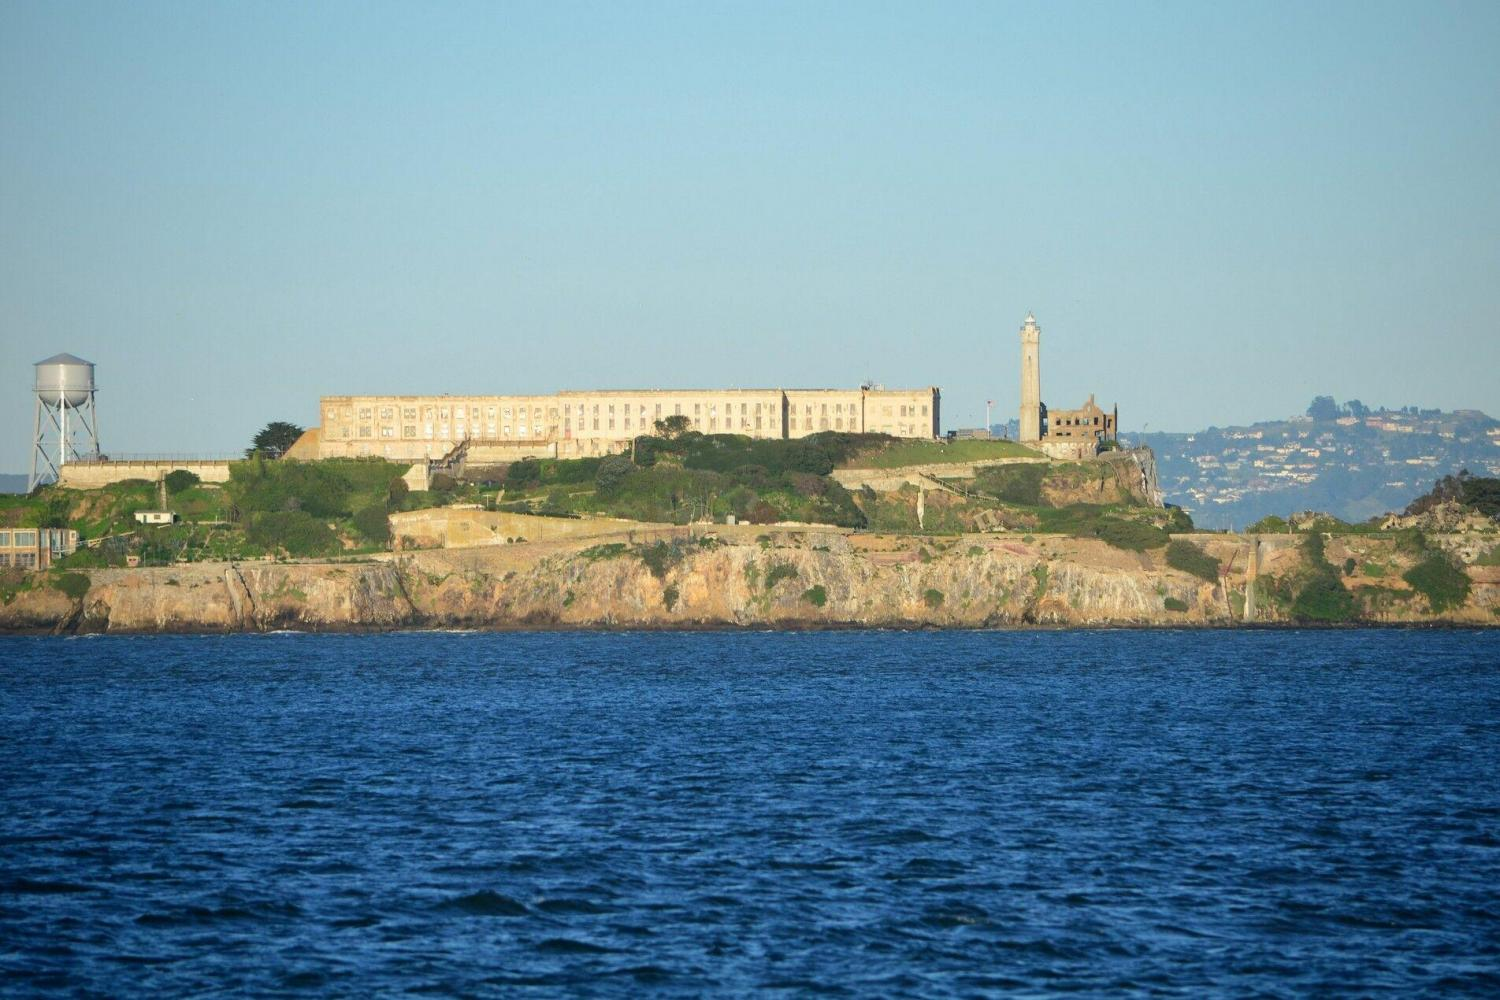 San Francisco City Tour & Bay Cruise Around Alcatraz